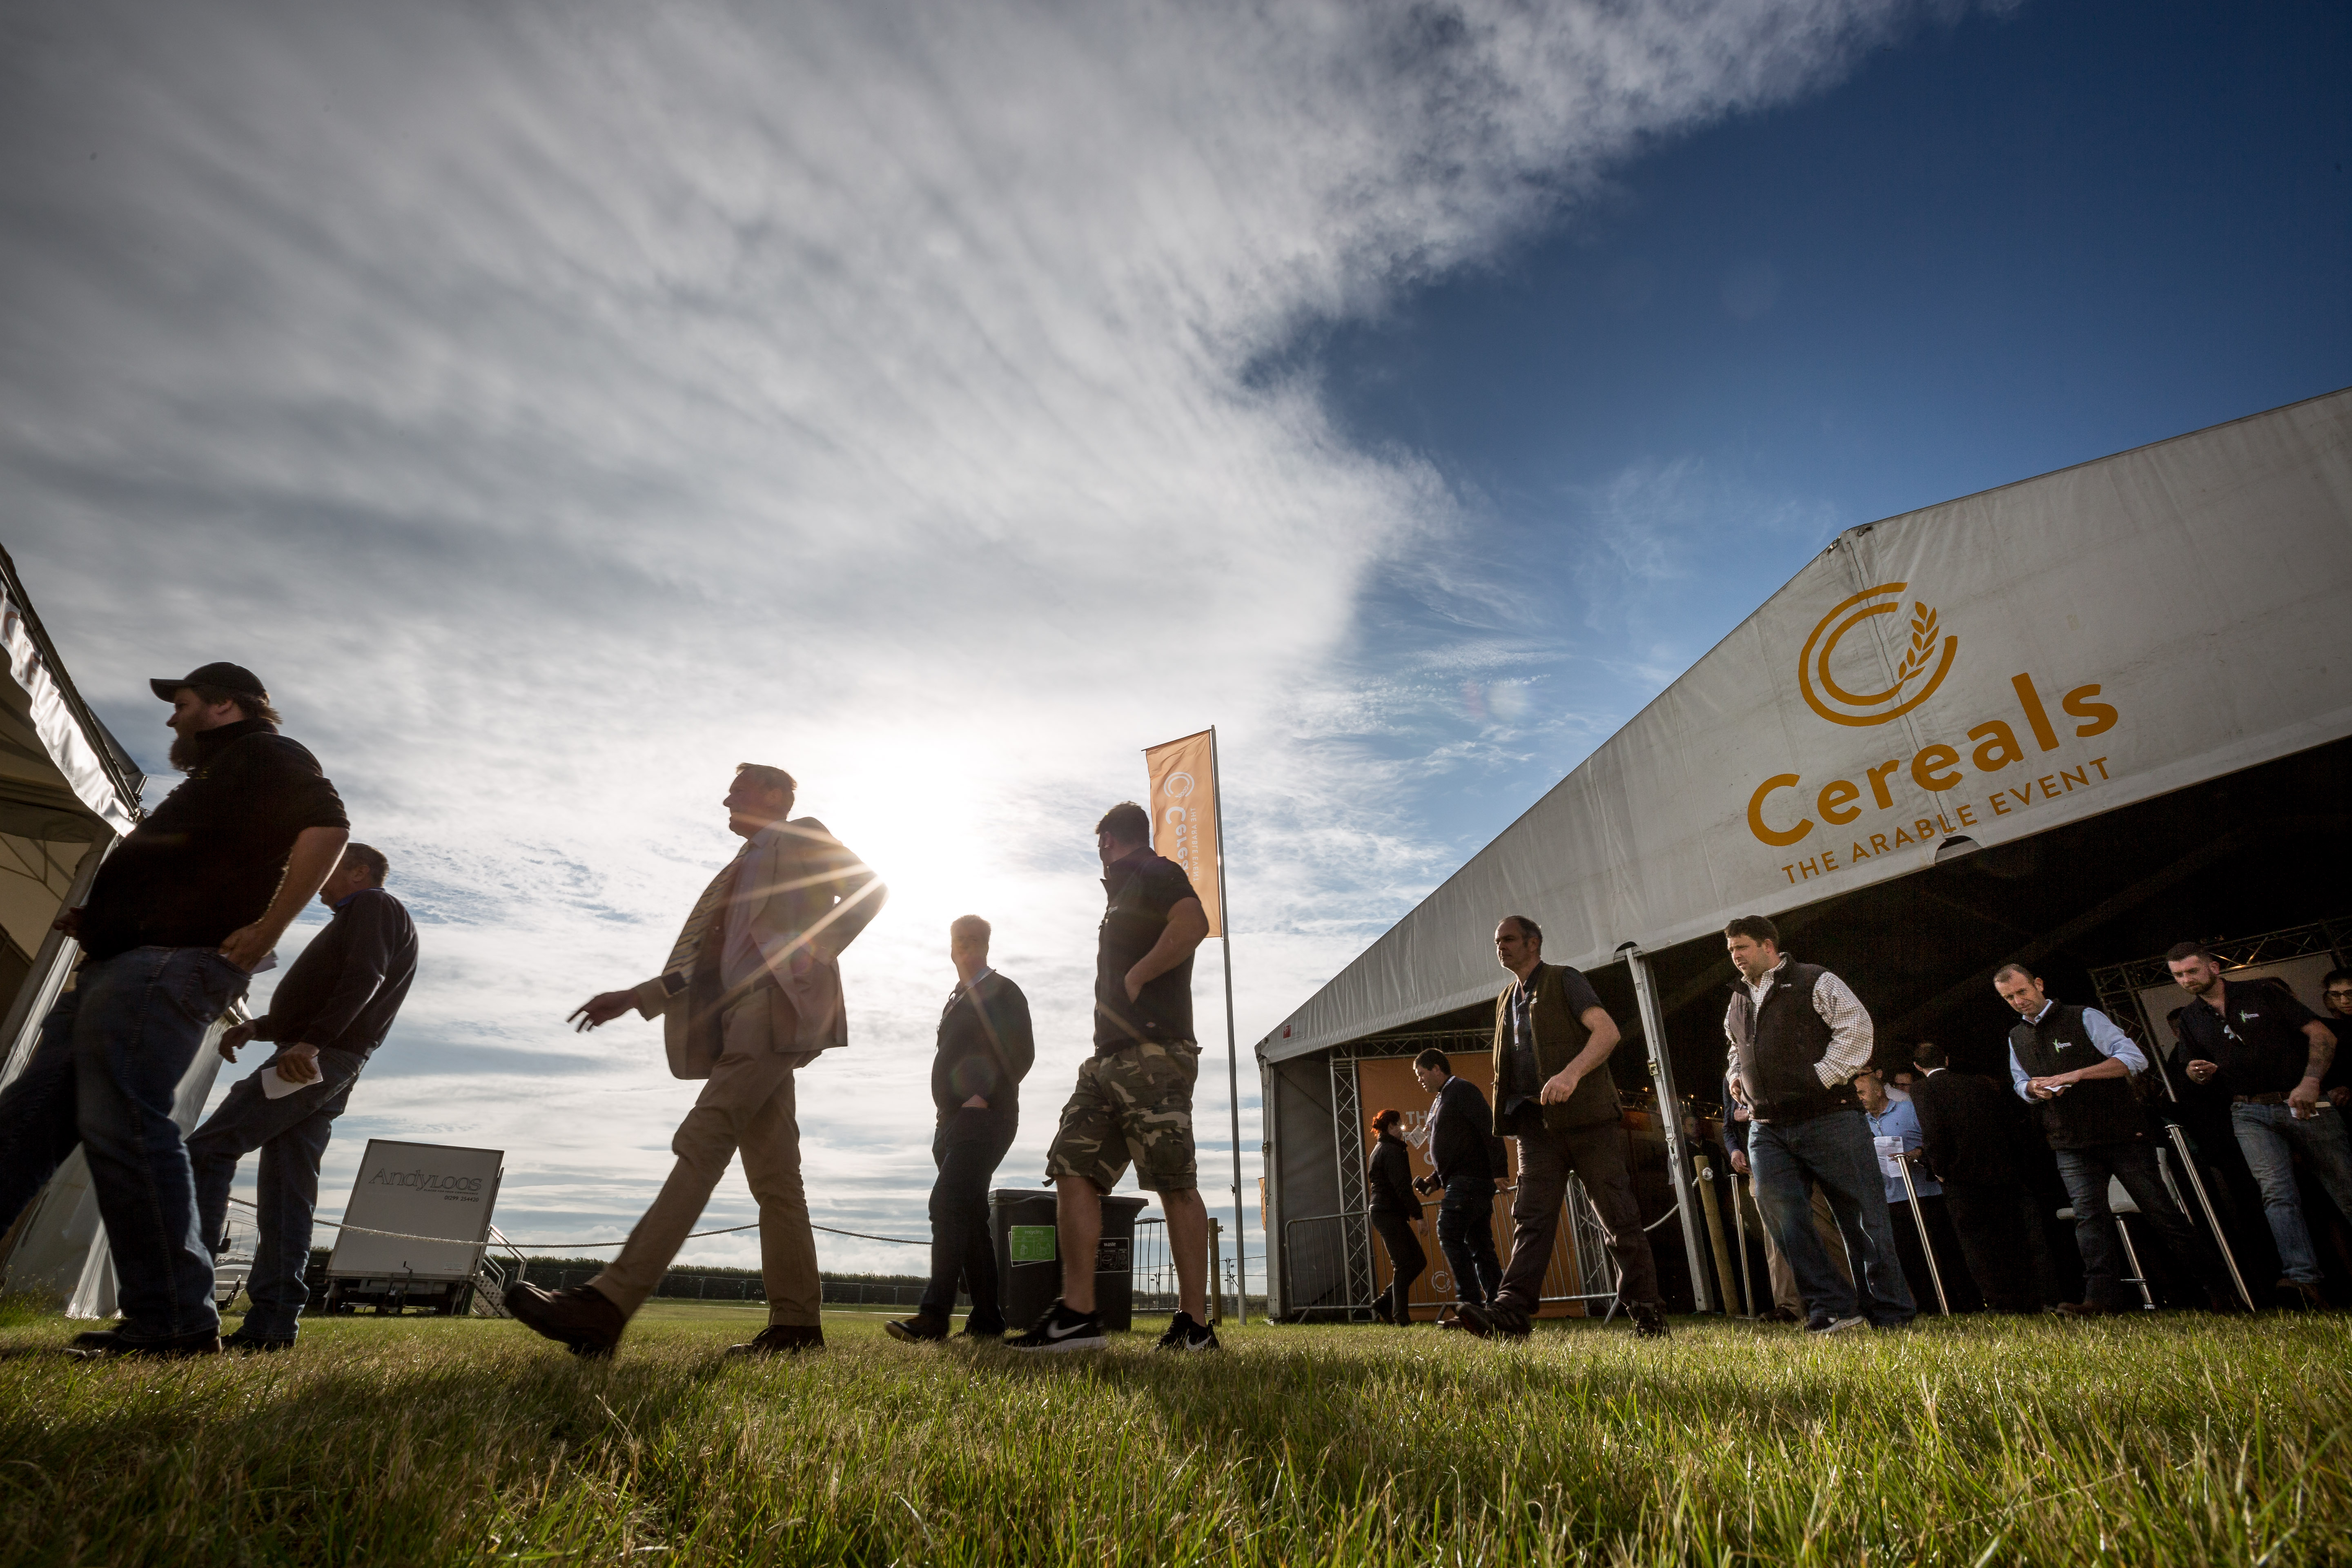 East of England Agricultural Society to attend Europe's leading arable event